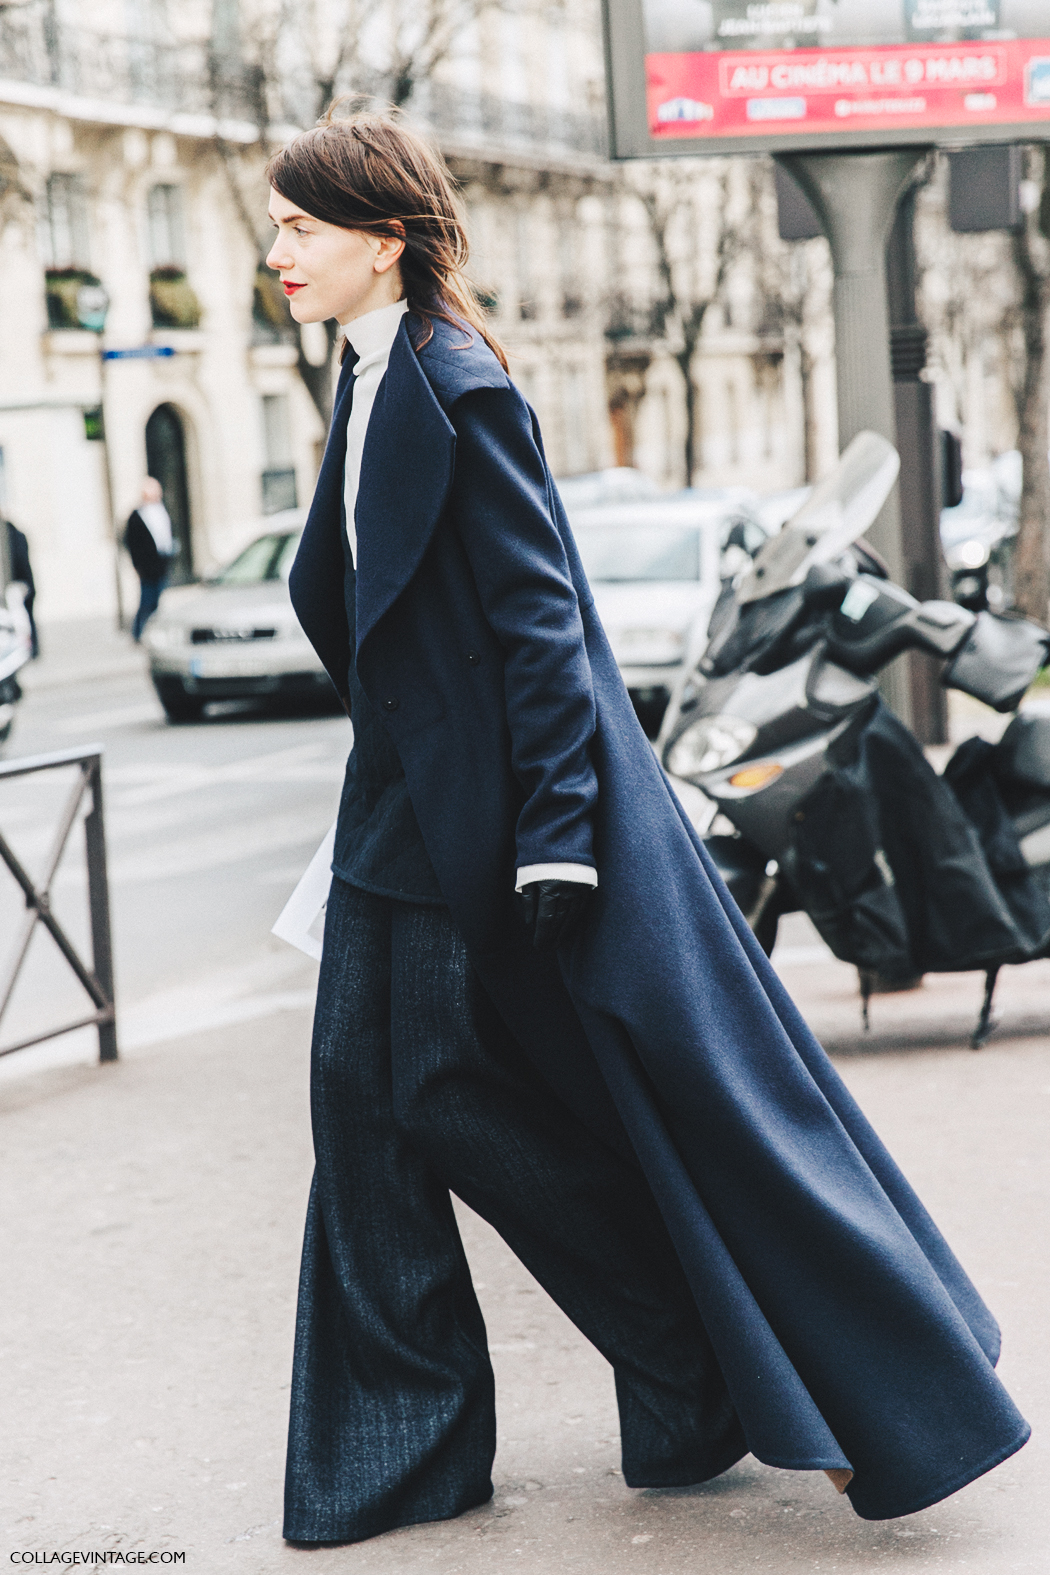 PFW-Paris_Fashion_Week_Fall_2016-Street_Style-Collage_Vintage-Maxi_Coat-3